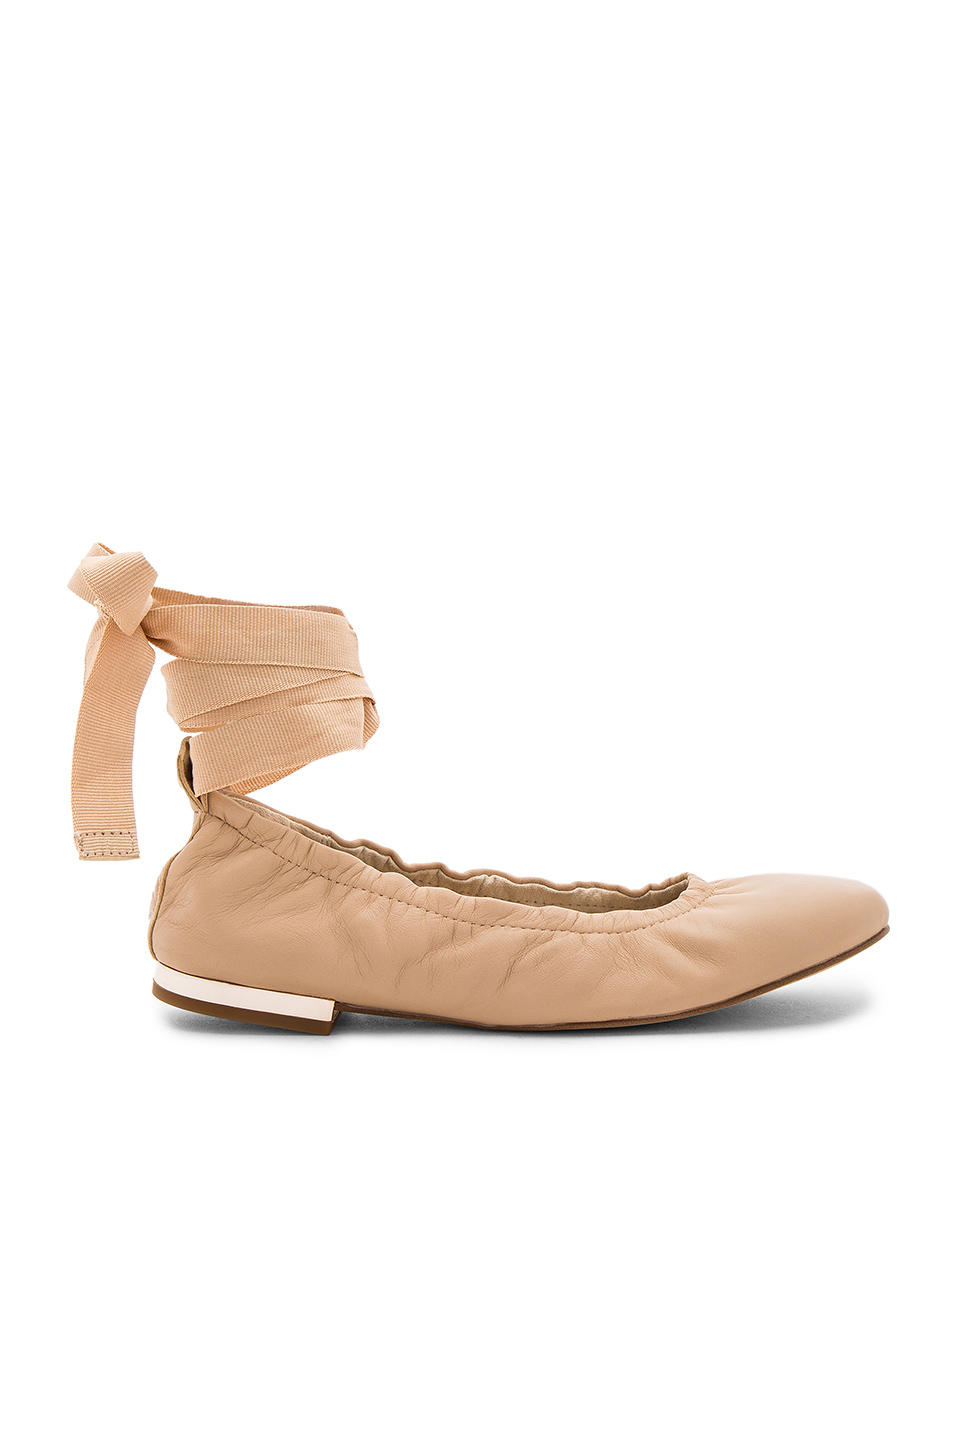 SAM EDELMAN Fallon Lace Up Ballet Flats in Nude Linen